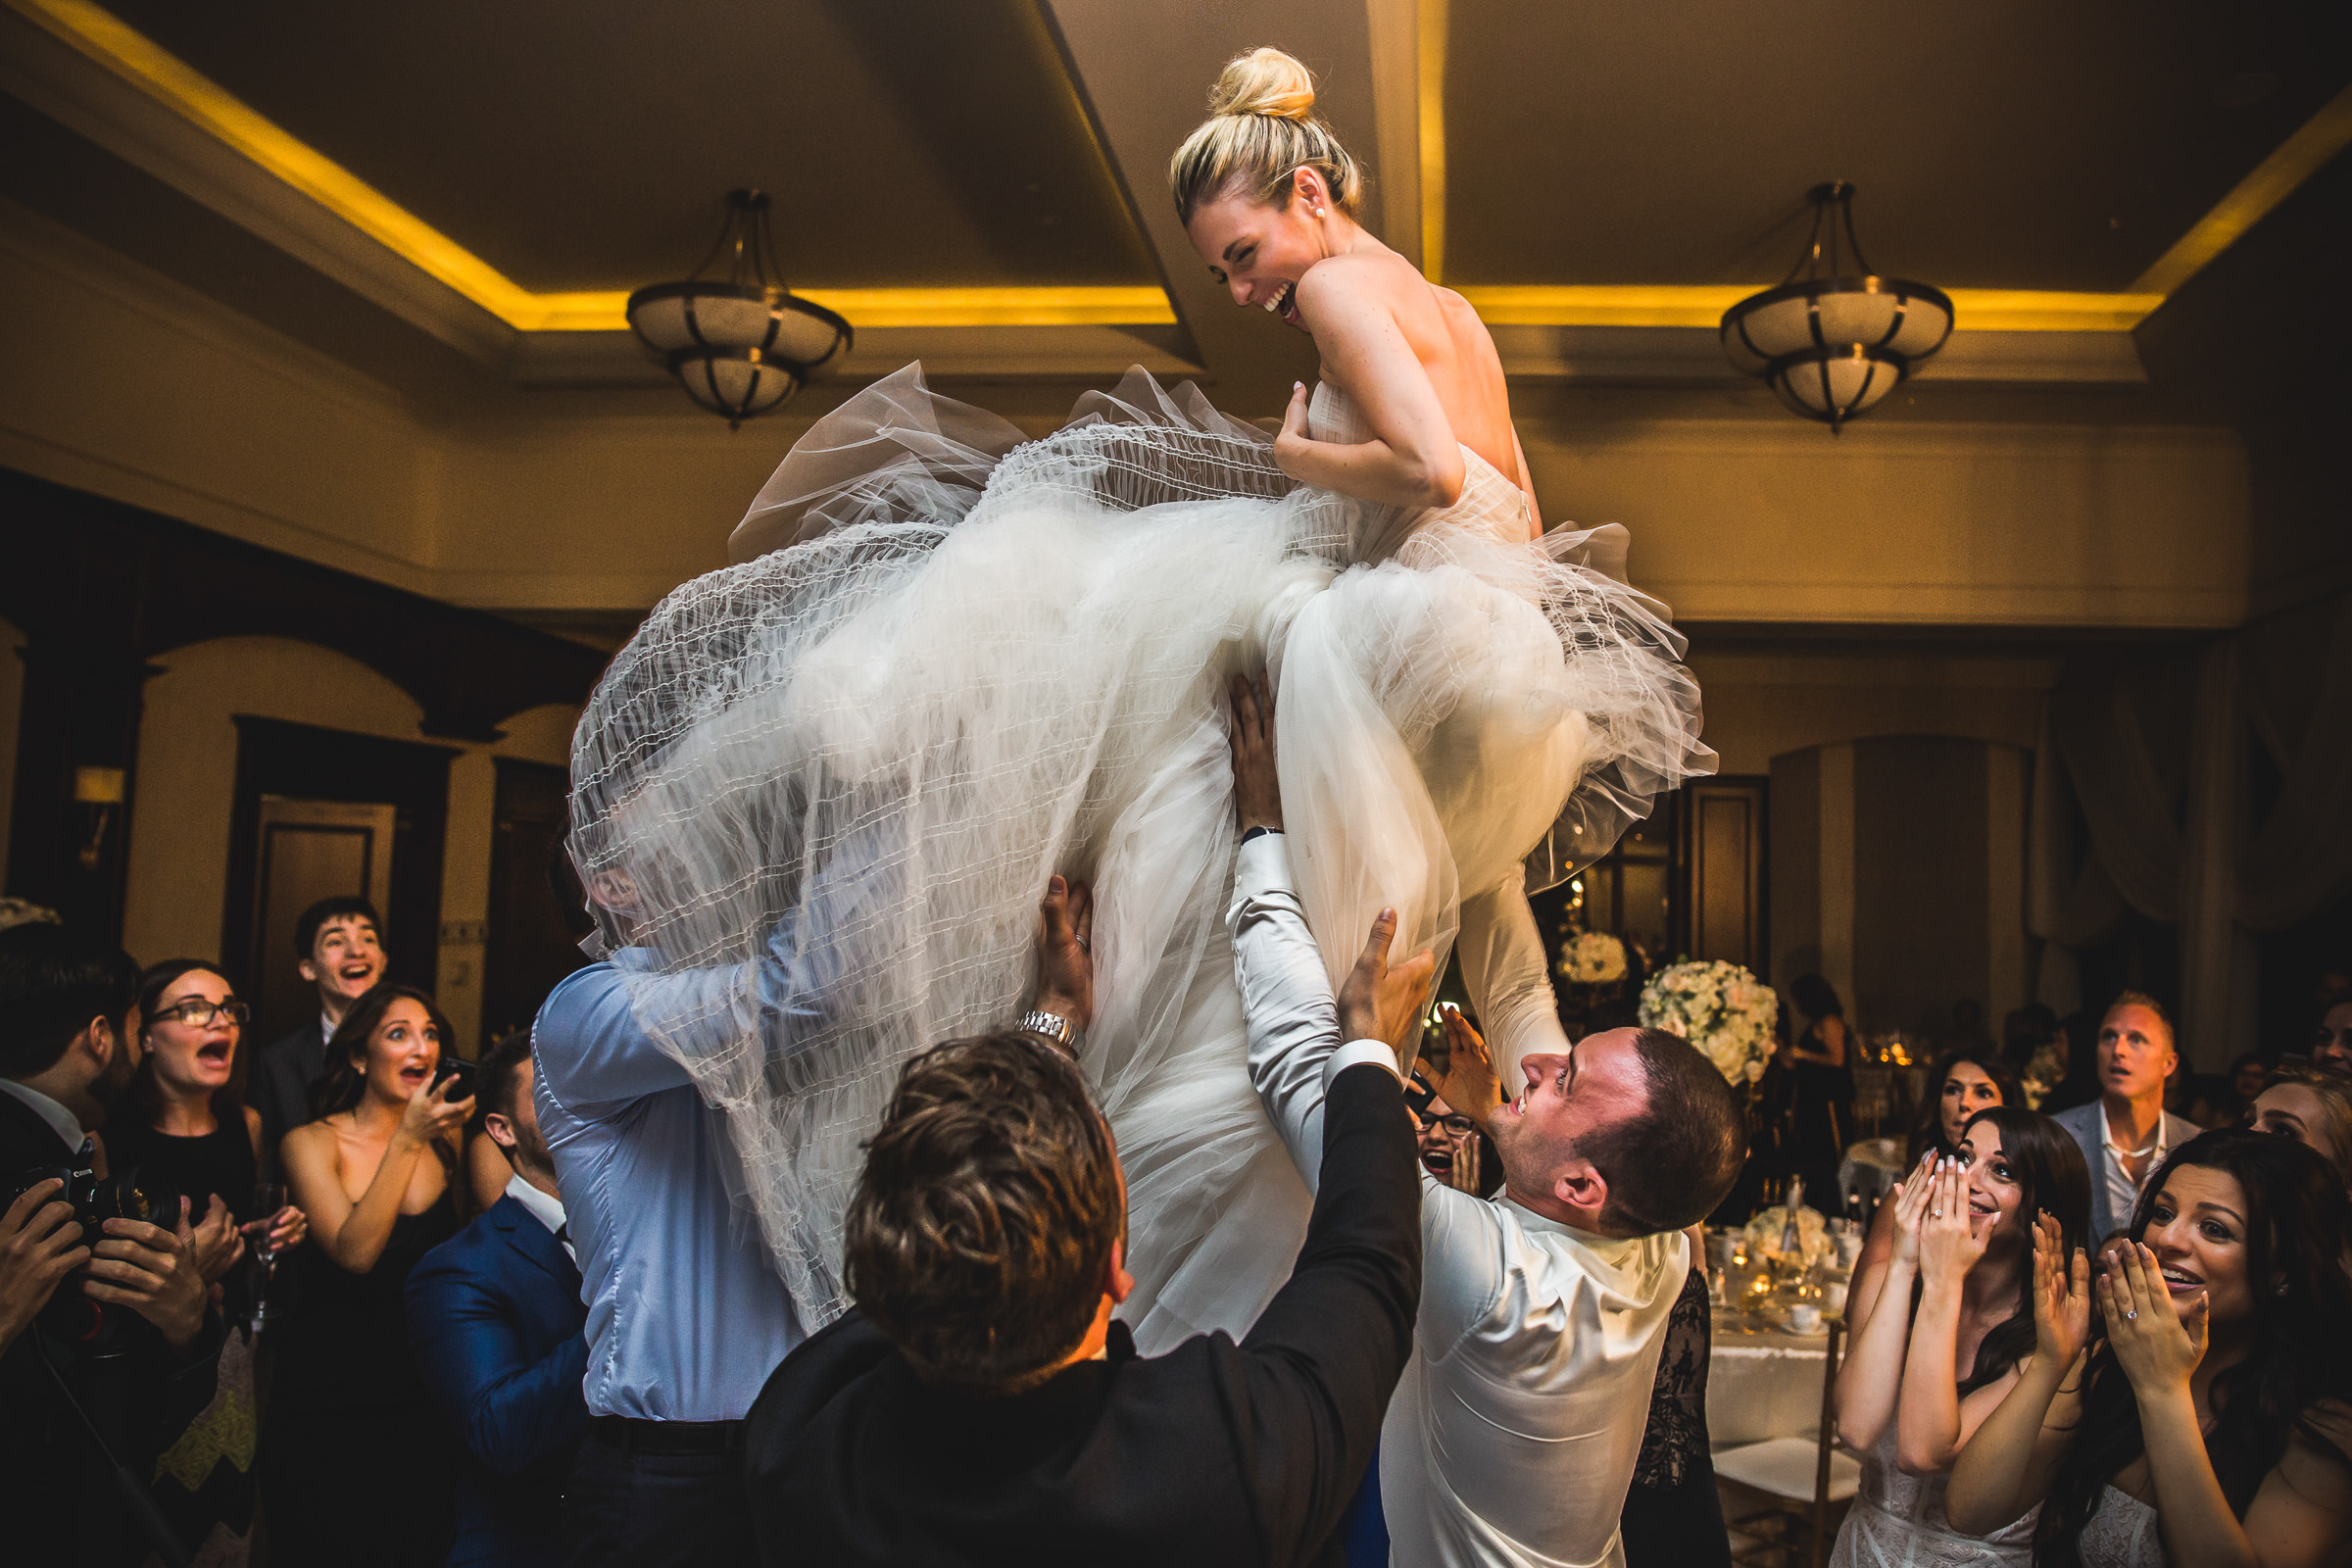 https://wbwp.s3.us-west-1.amazonaws.com/s3fs-public/inline-images/1-bride-in-tulle-being-held-in-the-air-mhart-los-angeles-photographer